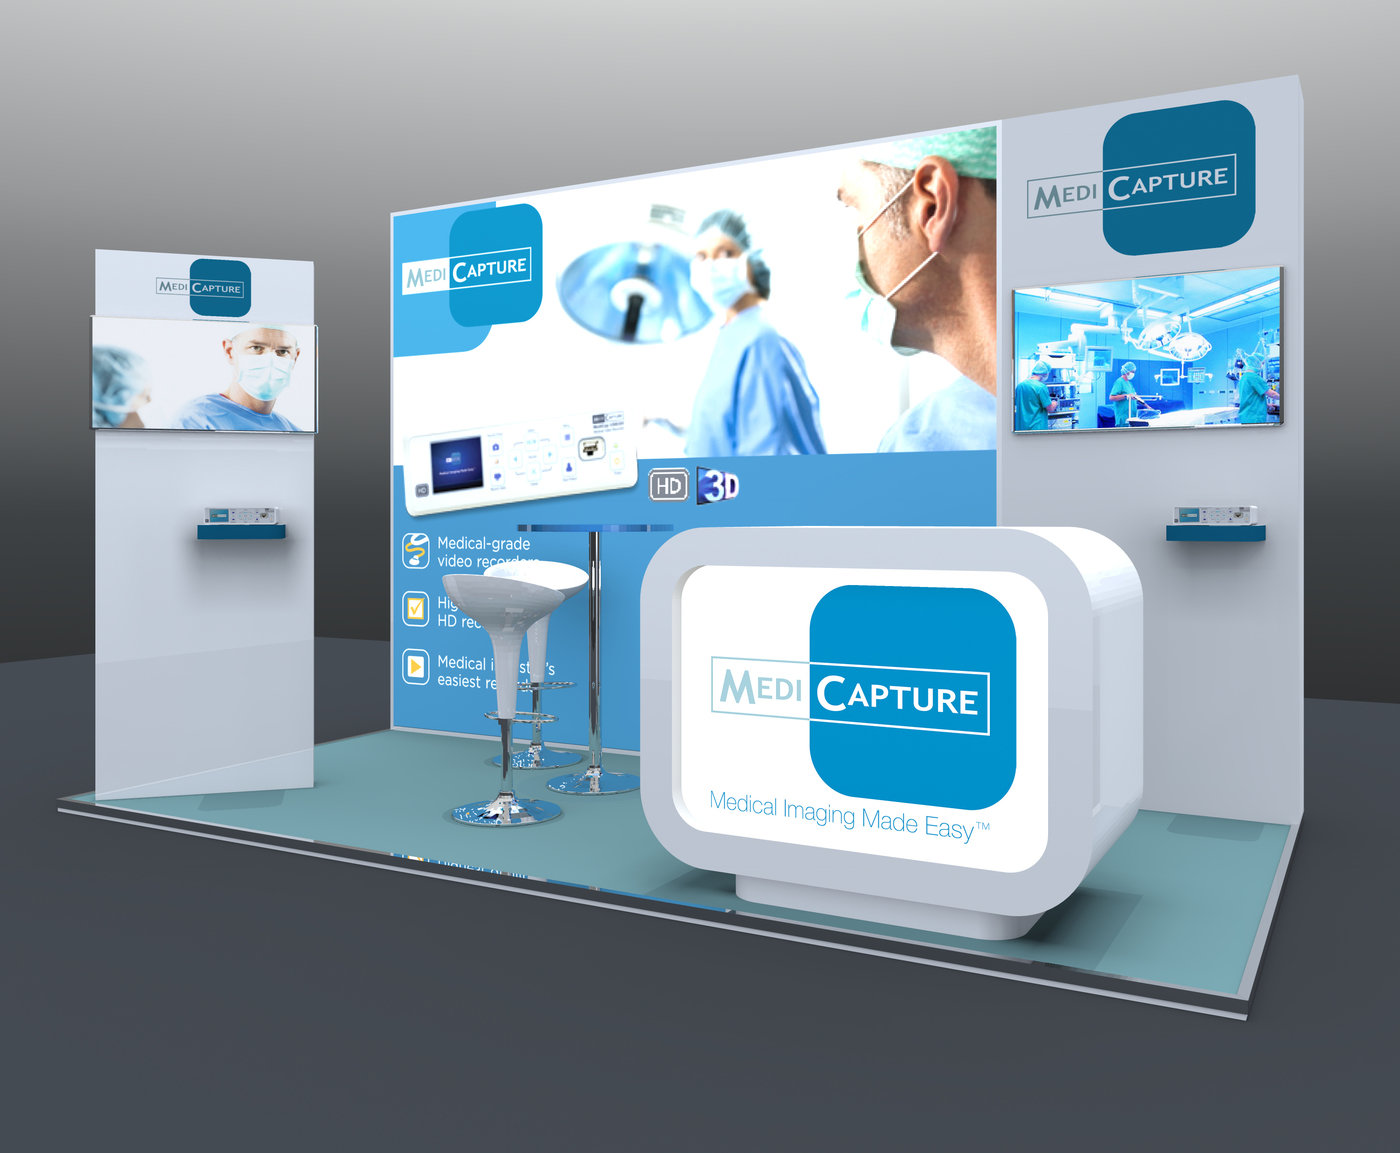 Custom Modular Exhibition Stands : Modular custom exhibition stand design medicapture by jason